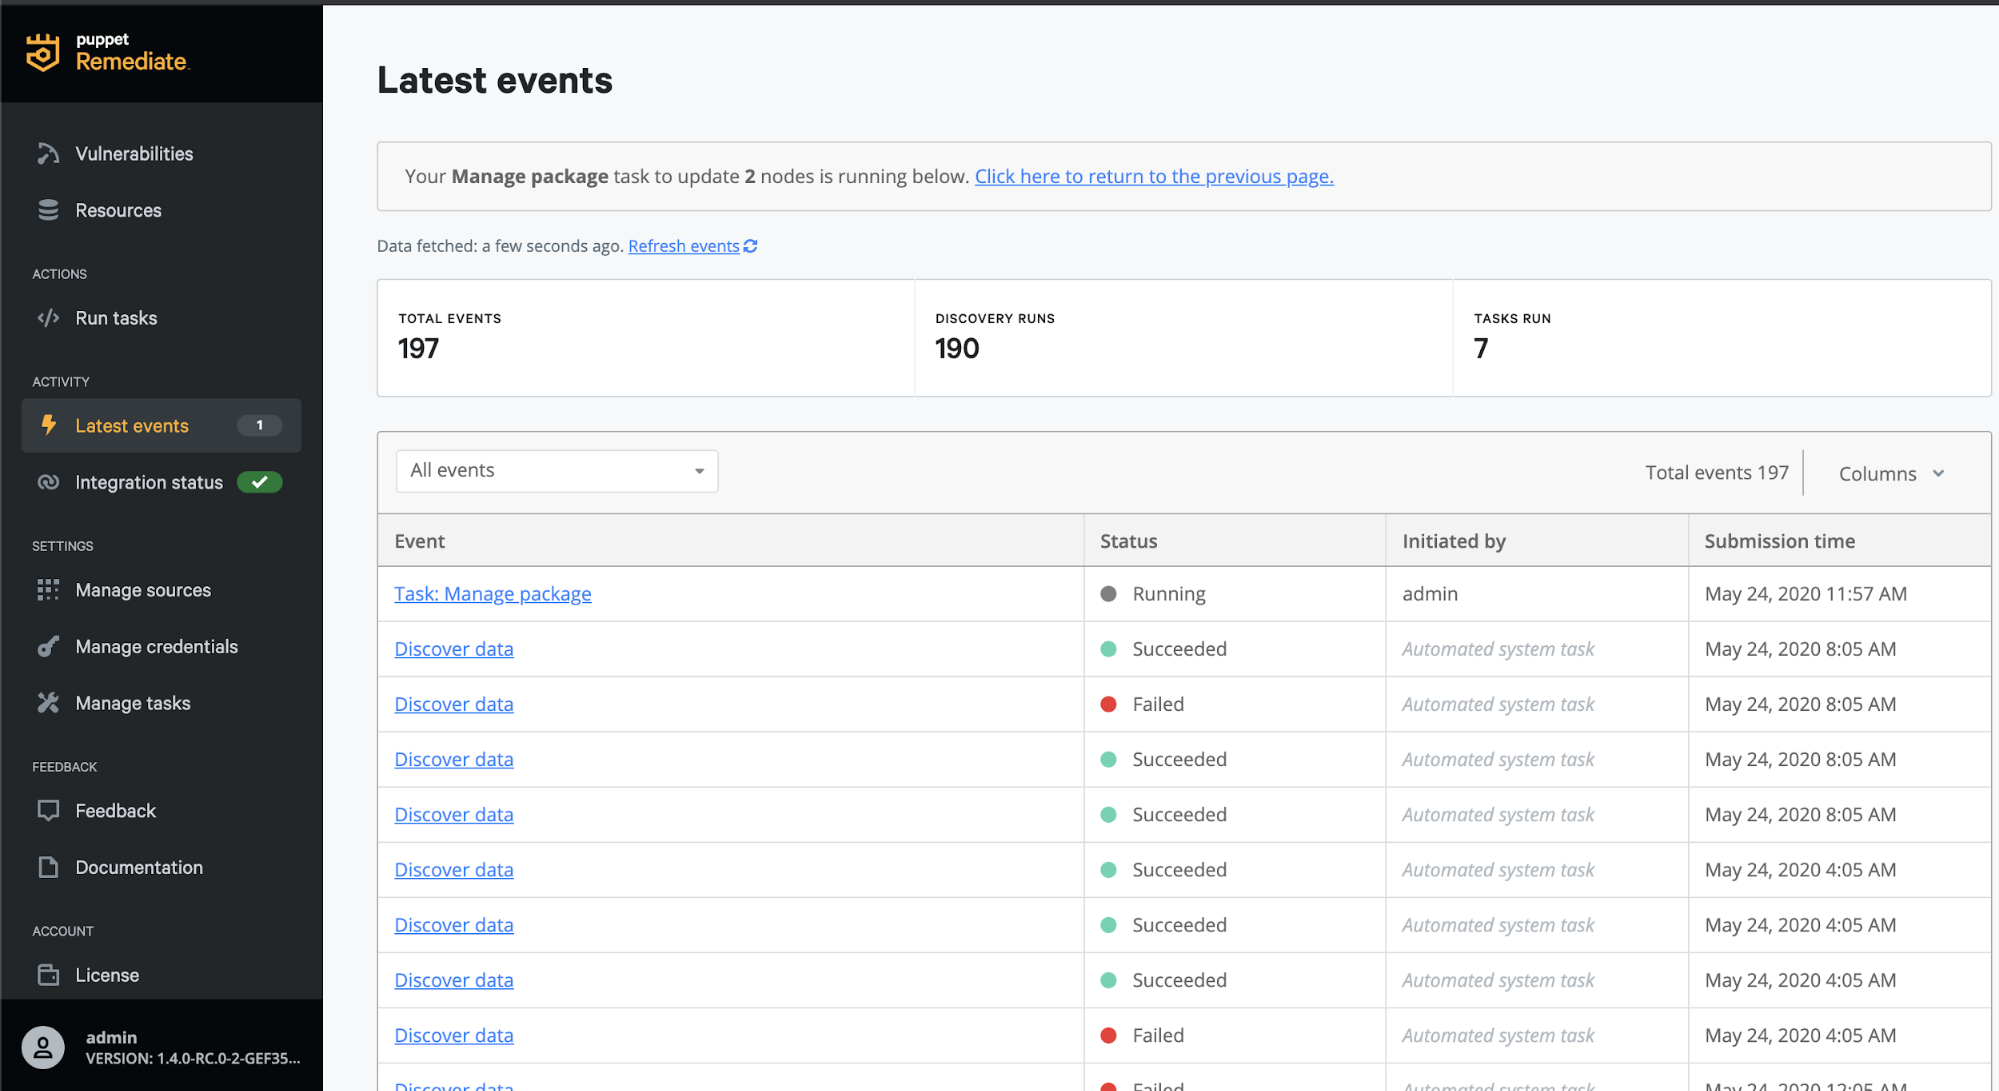 latest events puppet remediate